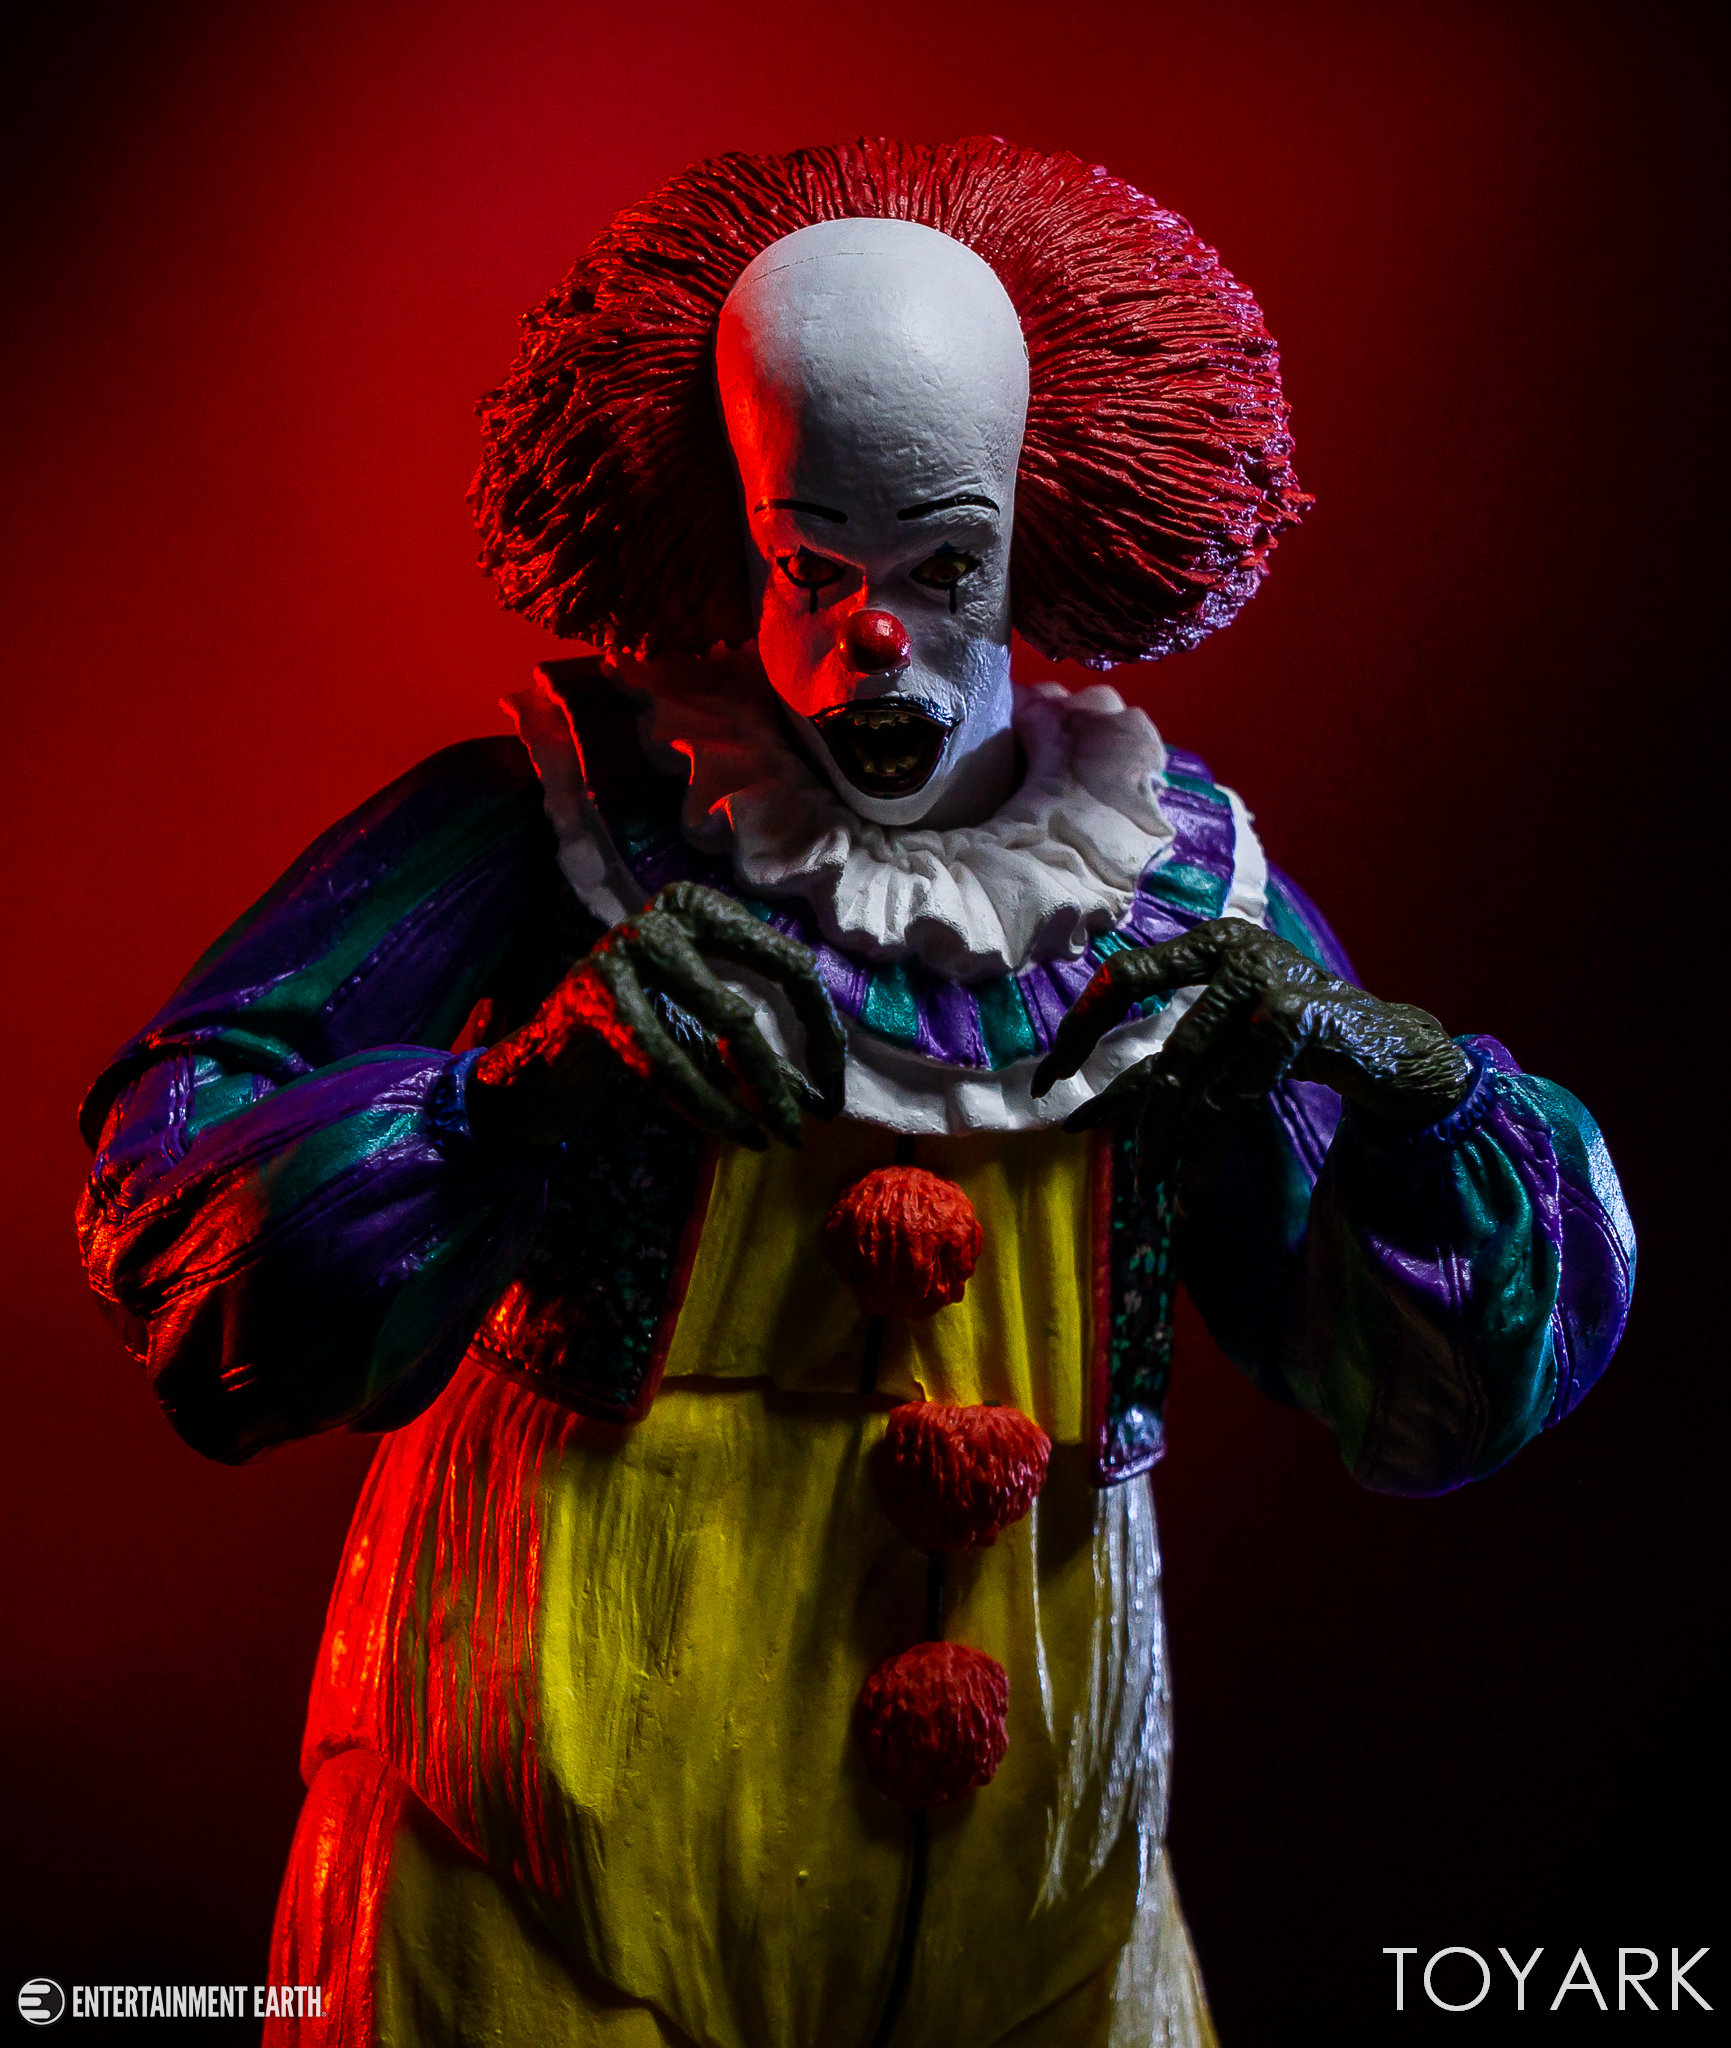 https://news.toyark.com/wp-content/uploads/sites/4/2018/10/NECA-1990-Pennywise-024.jpg